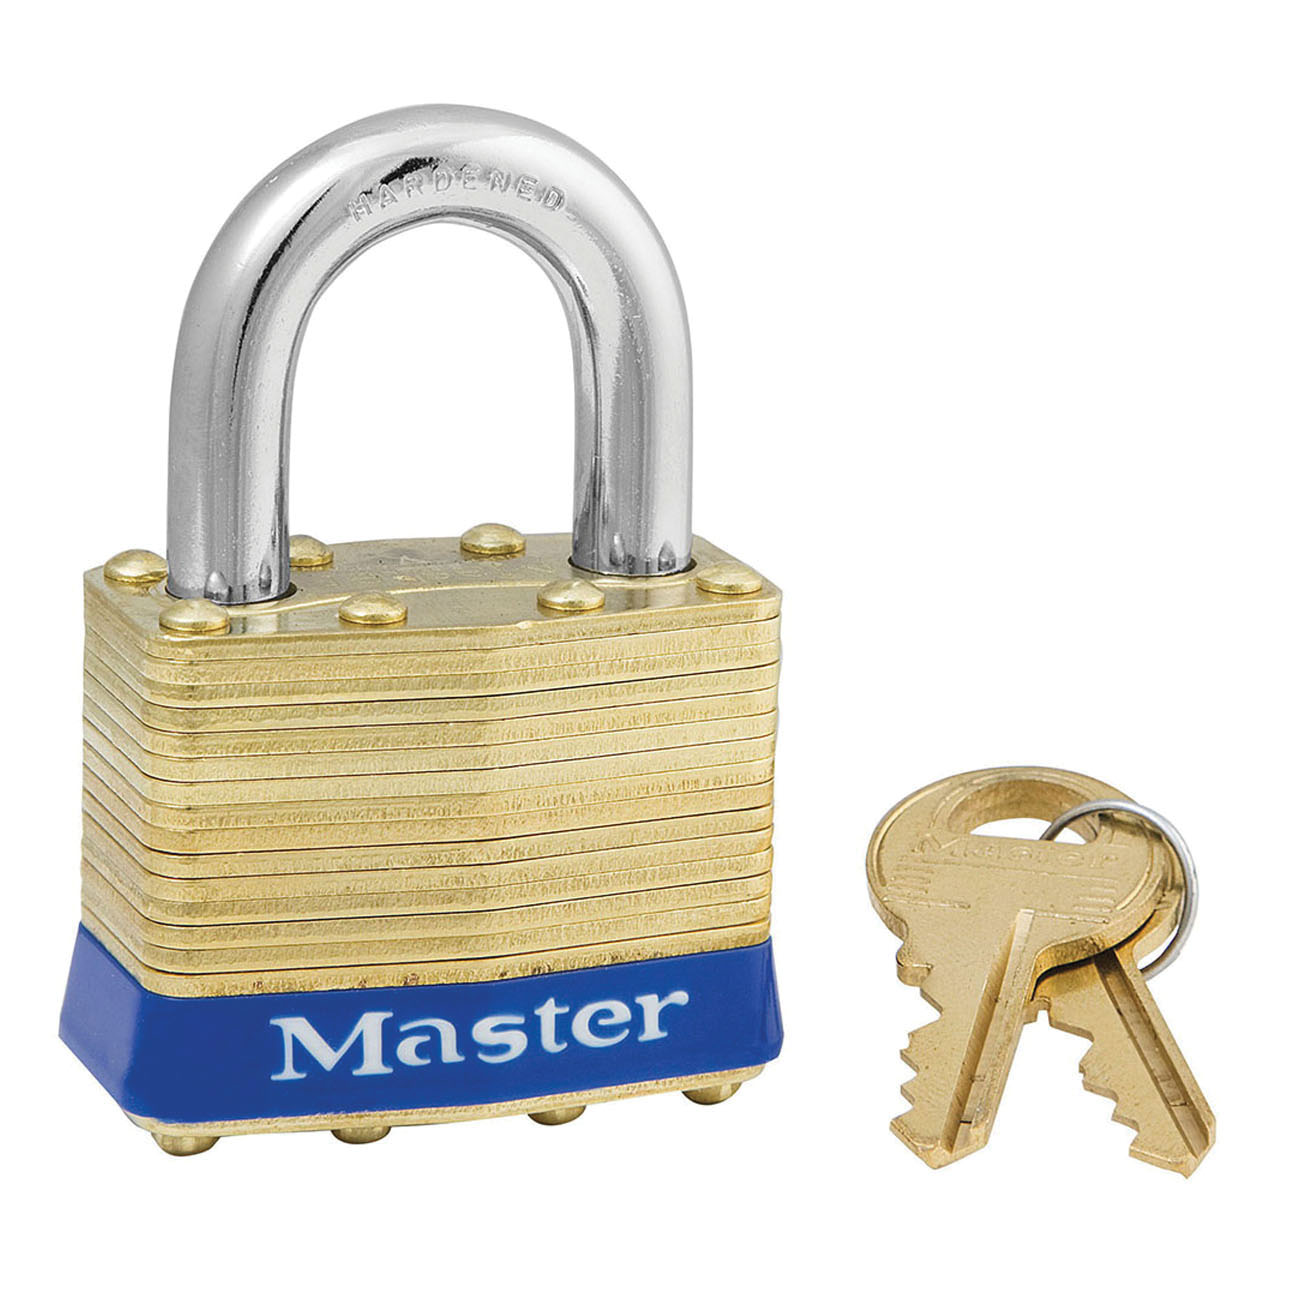 Master Lock® 1KA Commercial Grade Non-Rekeyable Safety Padlock, Alike Key, 5/16 in Shackle, Laminated Steel Body, 4-Pin Tumbler Locking